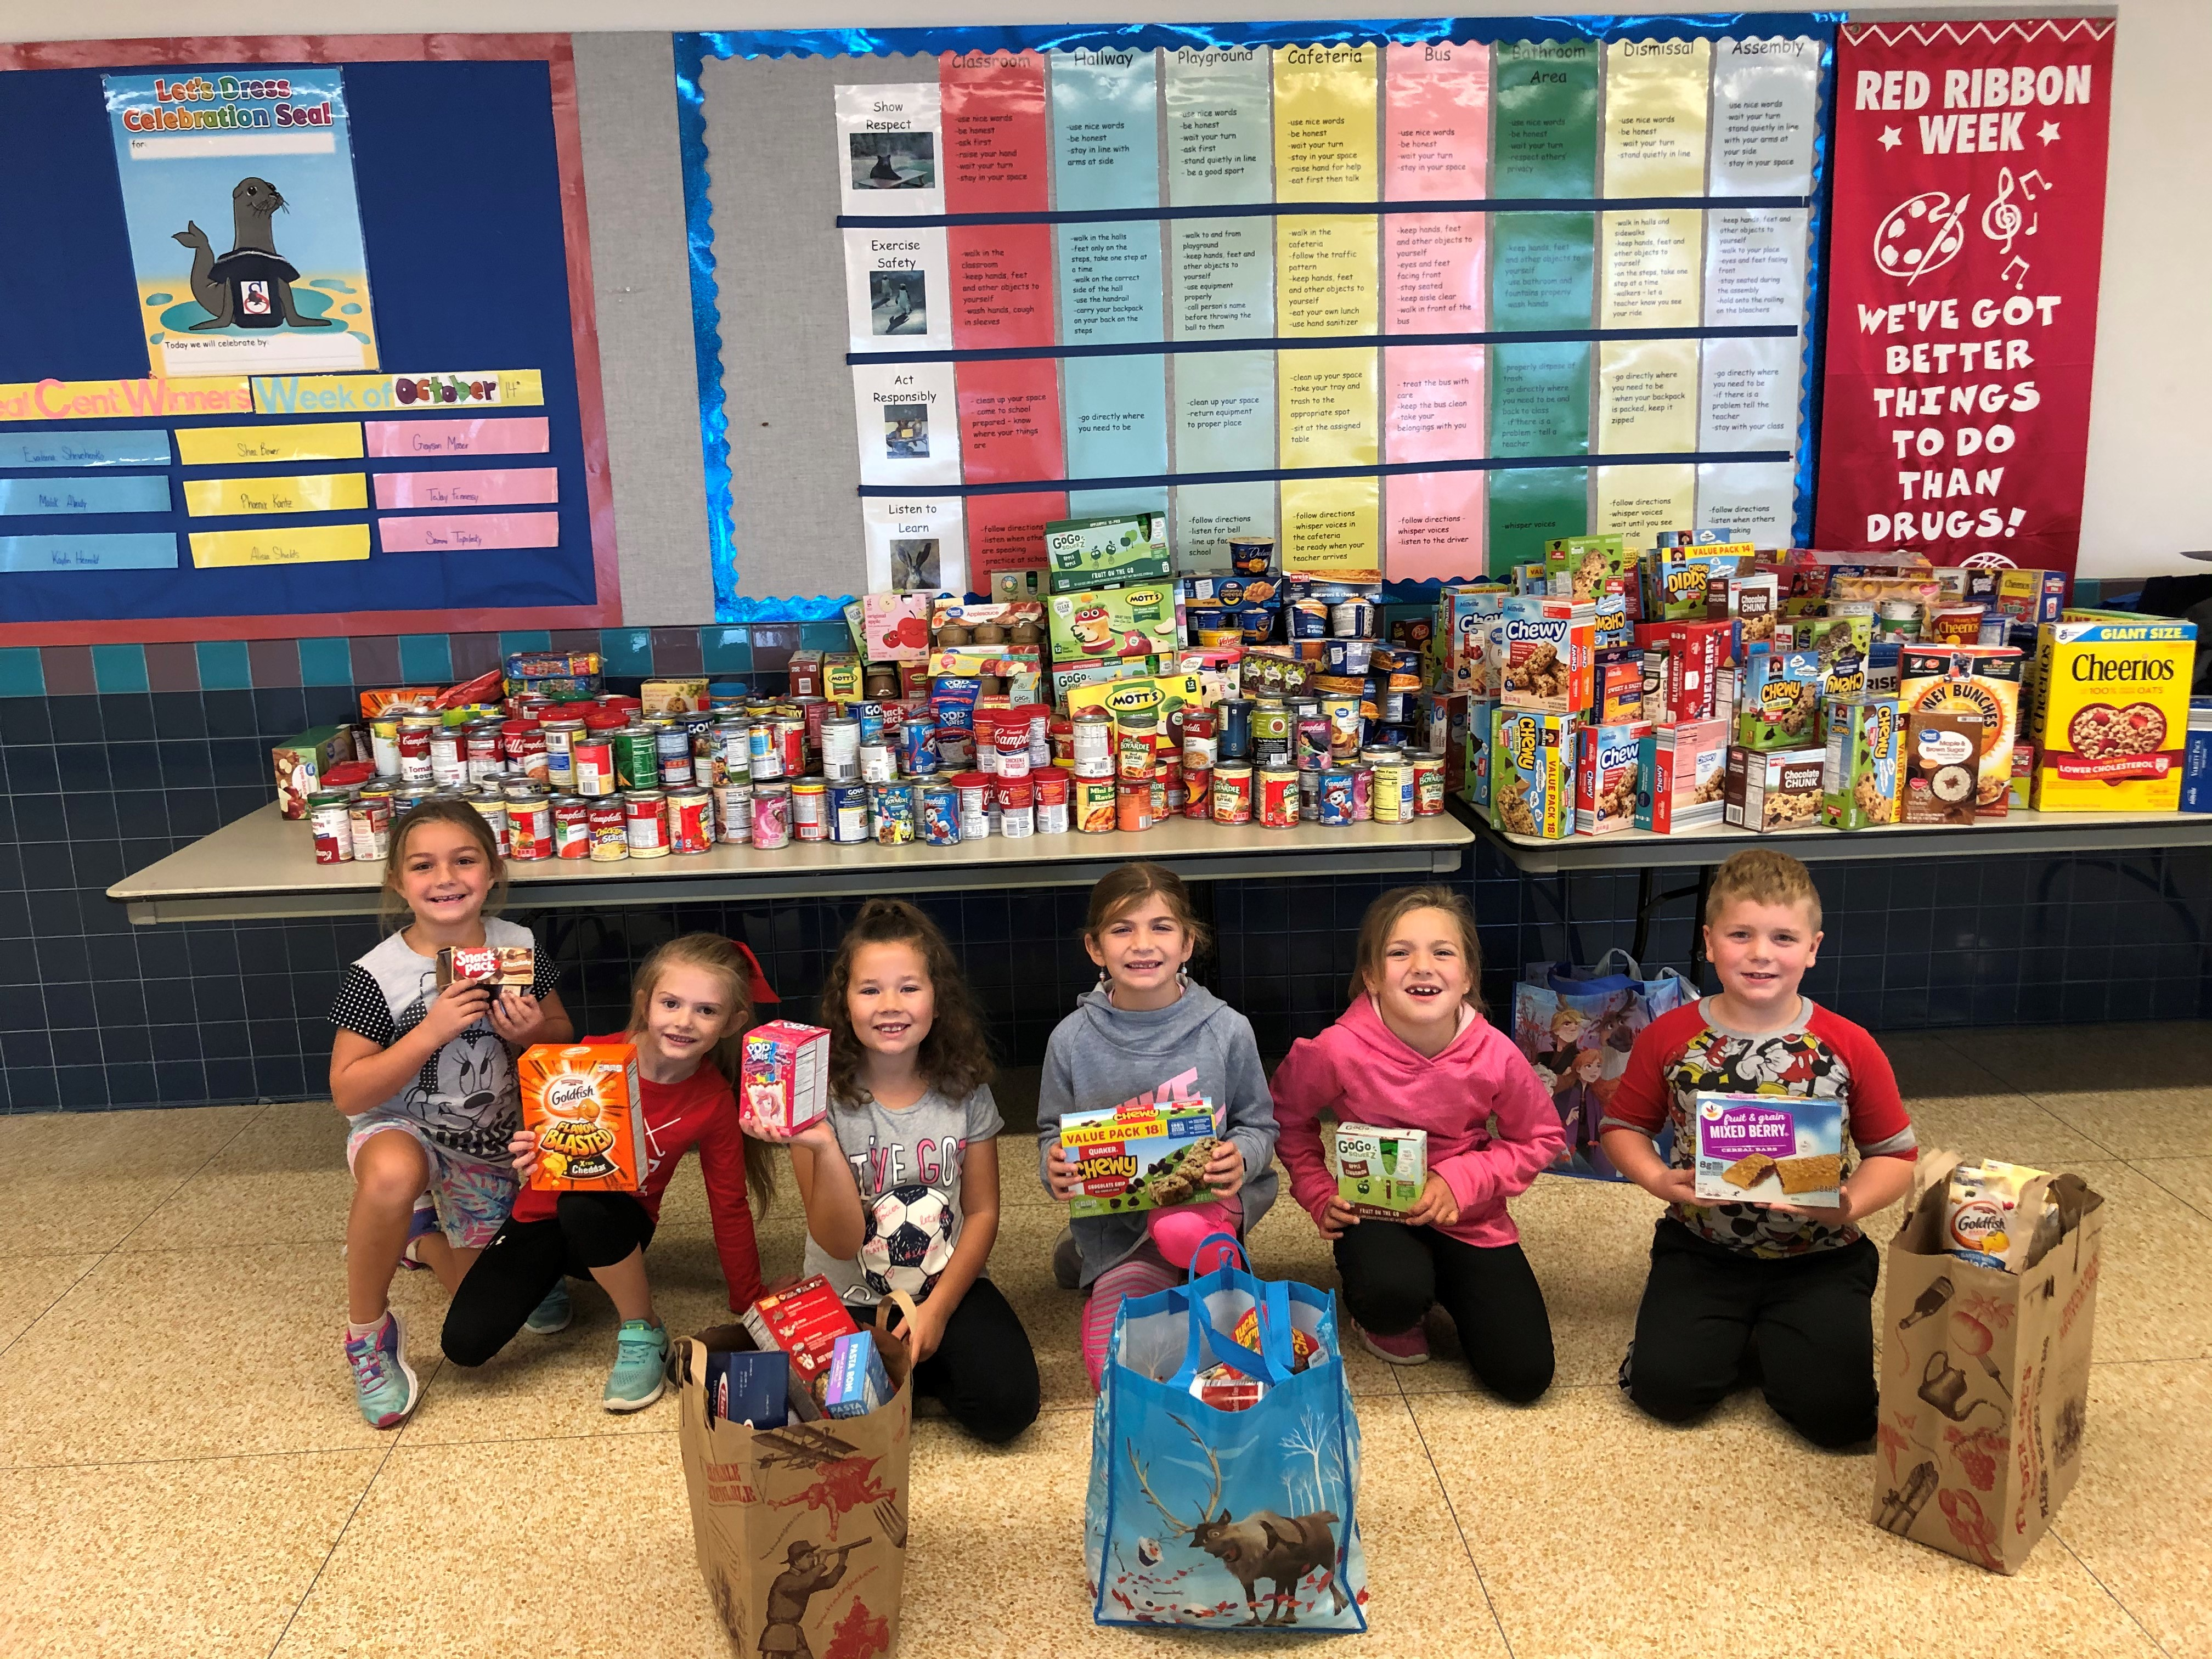 Students collected food donations for the Meals for Seals Program during Red Ribbon Week